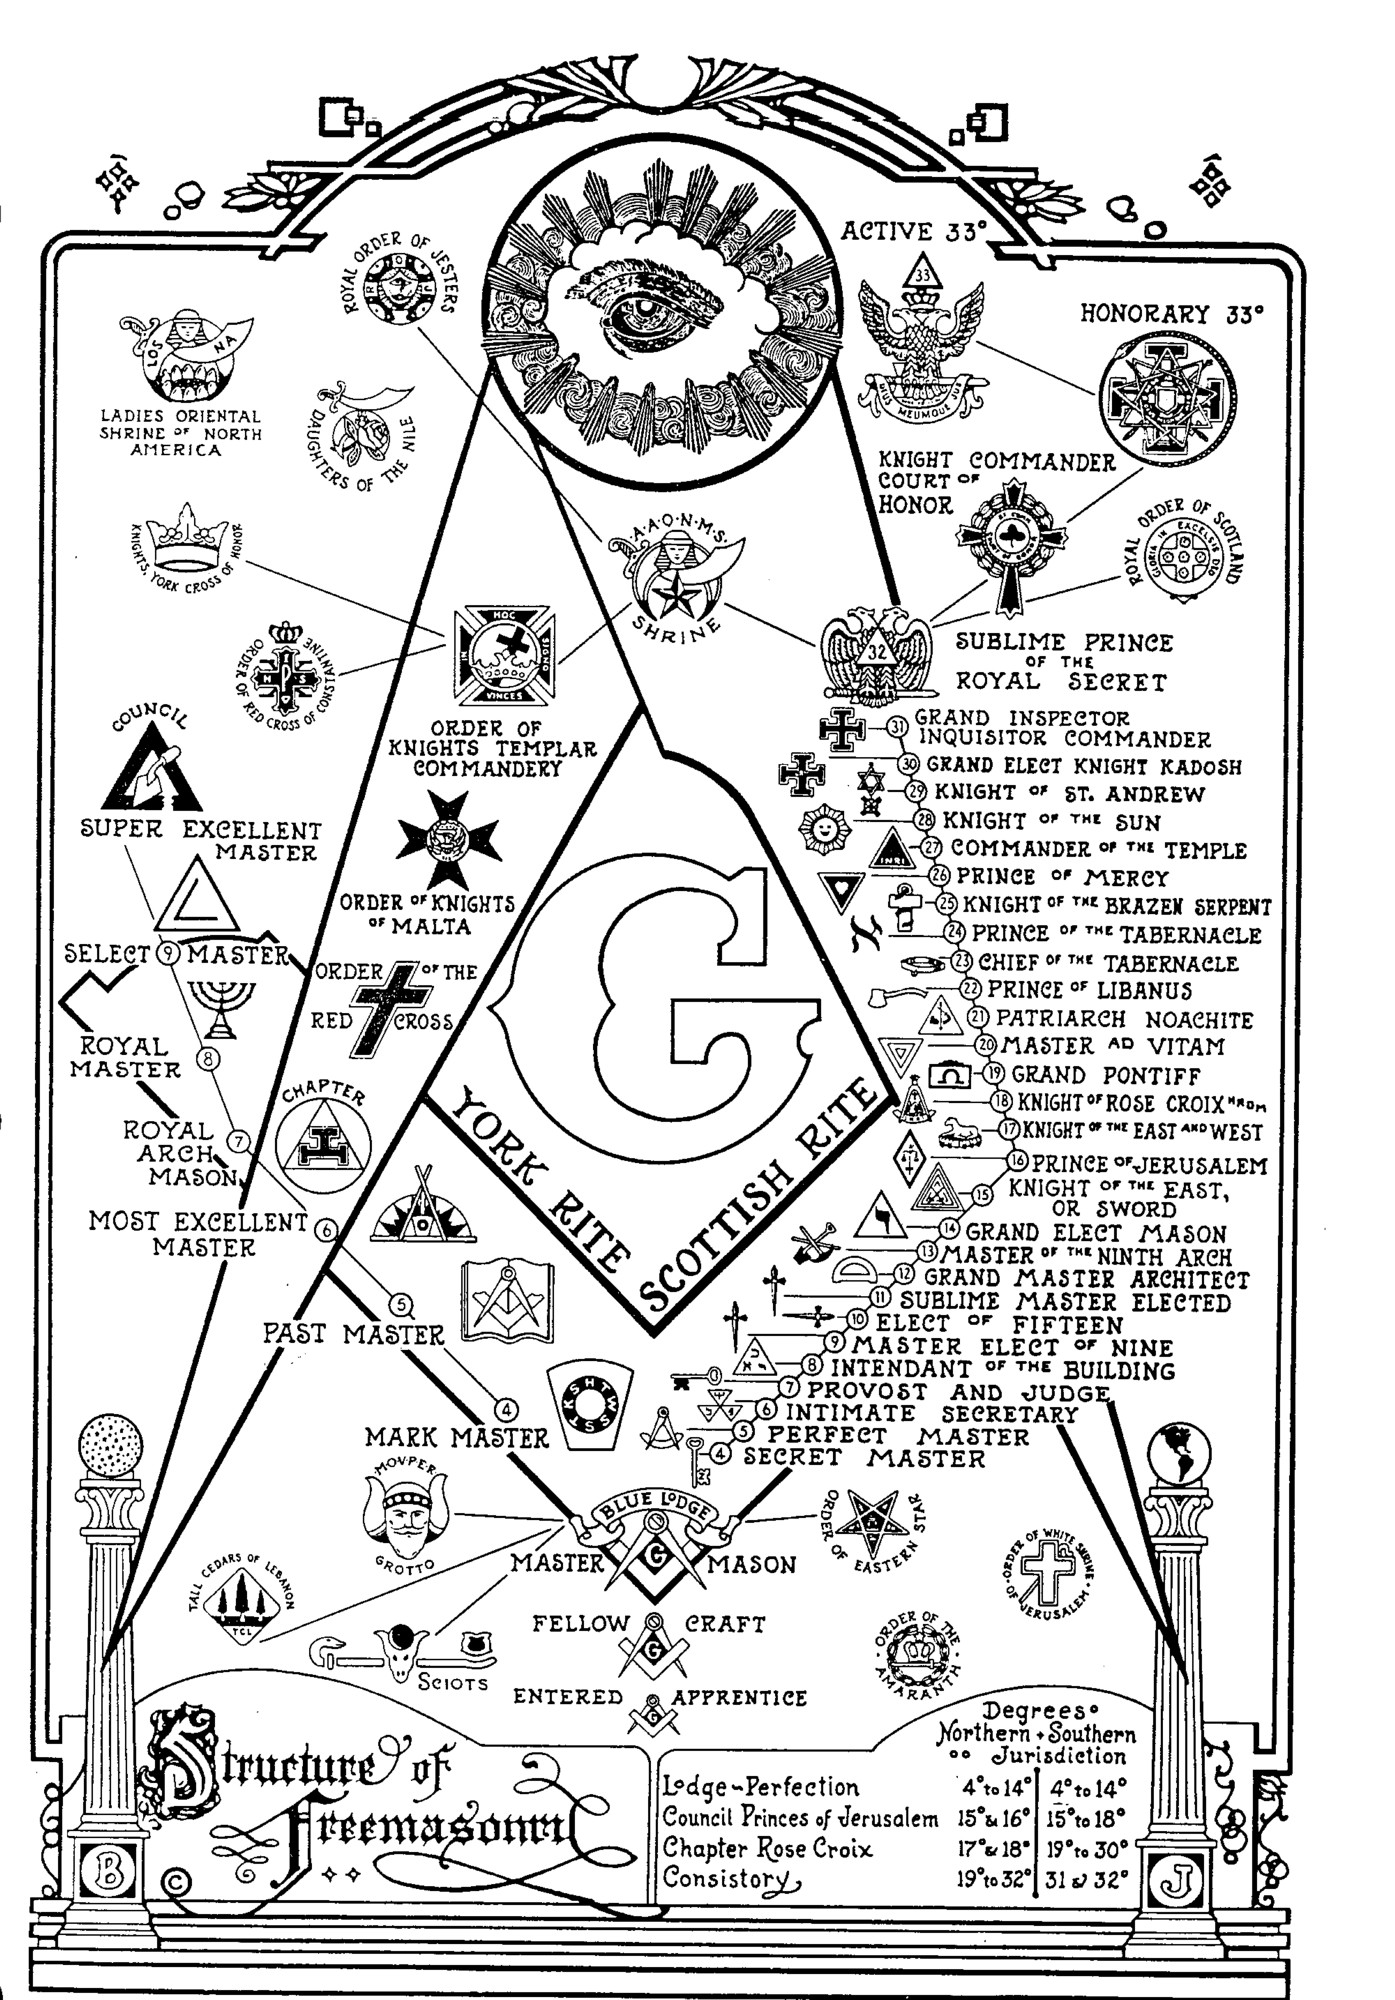 Diagram Of The Structure Of Freemasonry